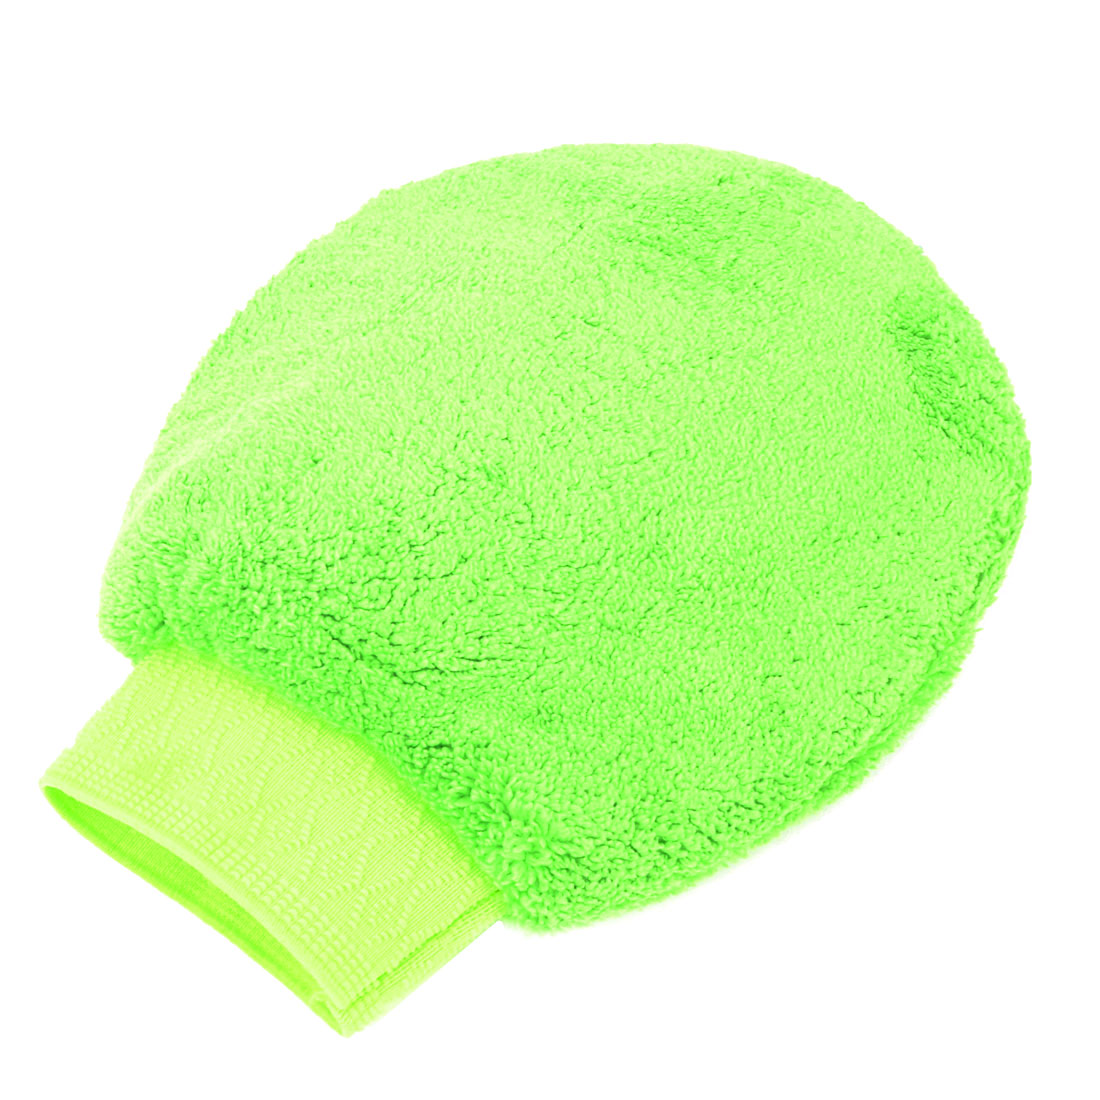 Car Washing Cleaning Tool Double Sides Microfiber Mitt Glove Green